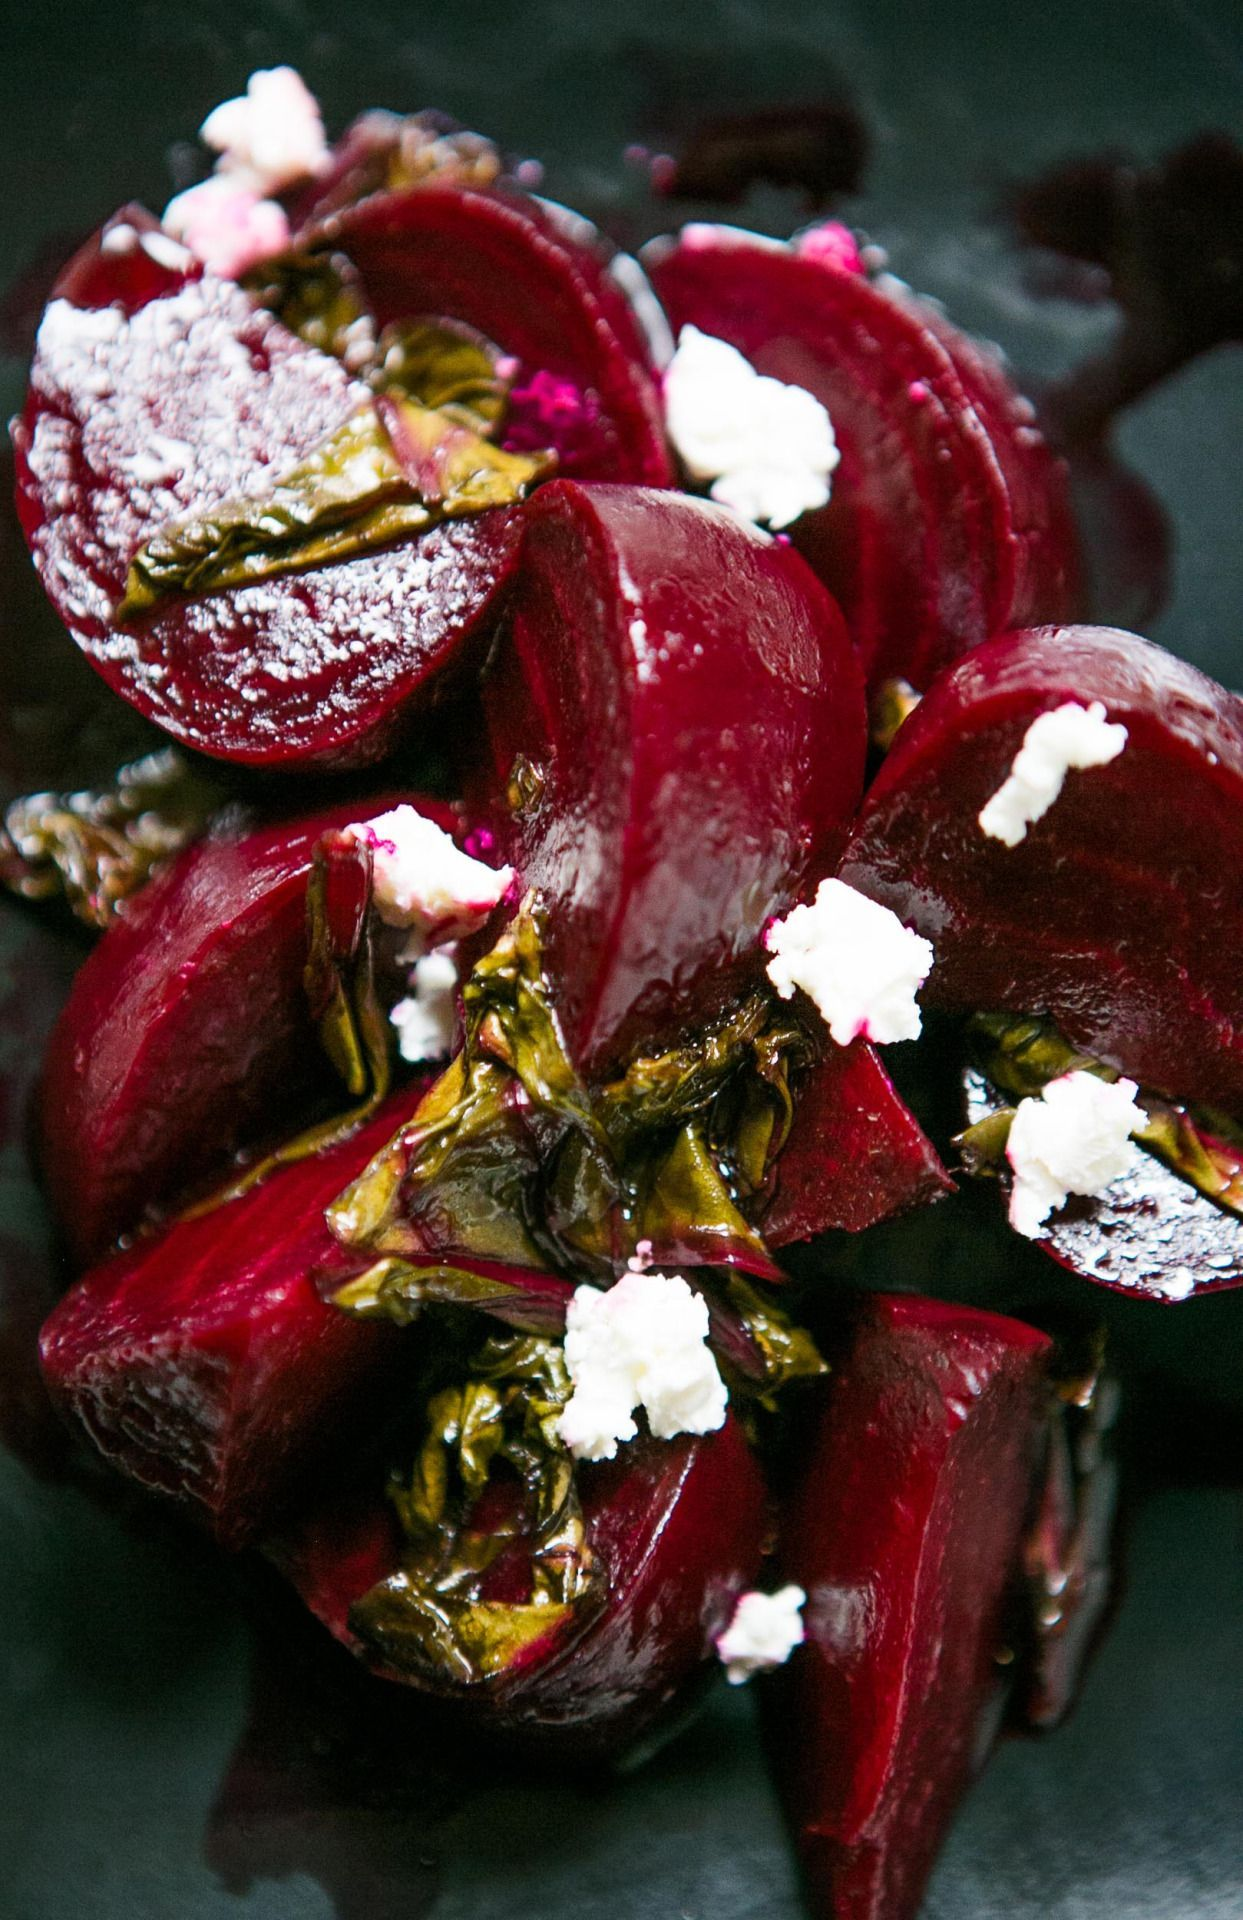 Roasted Beet Salad with Goat Cheese We love beets... | Dinner was Delicious #roastedbeetsalad